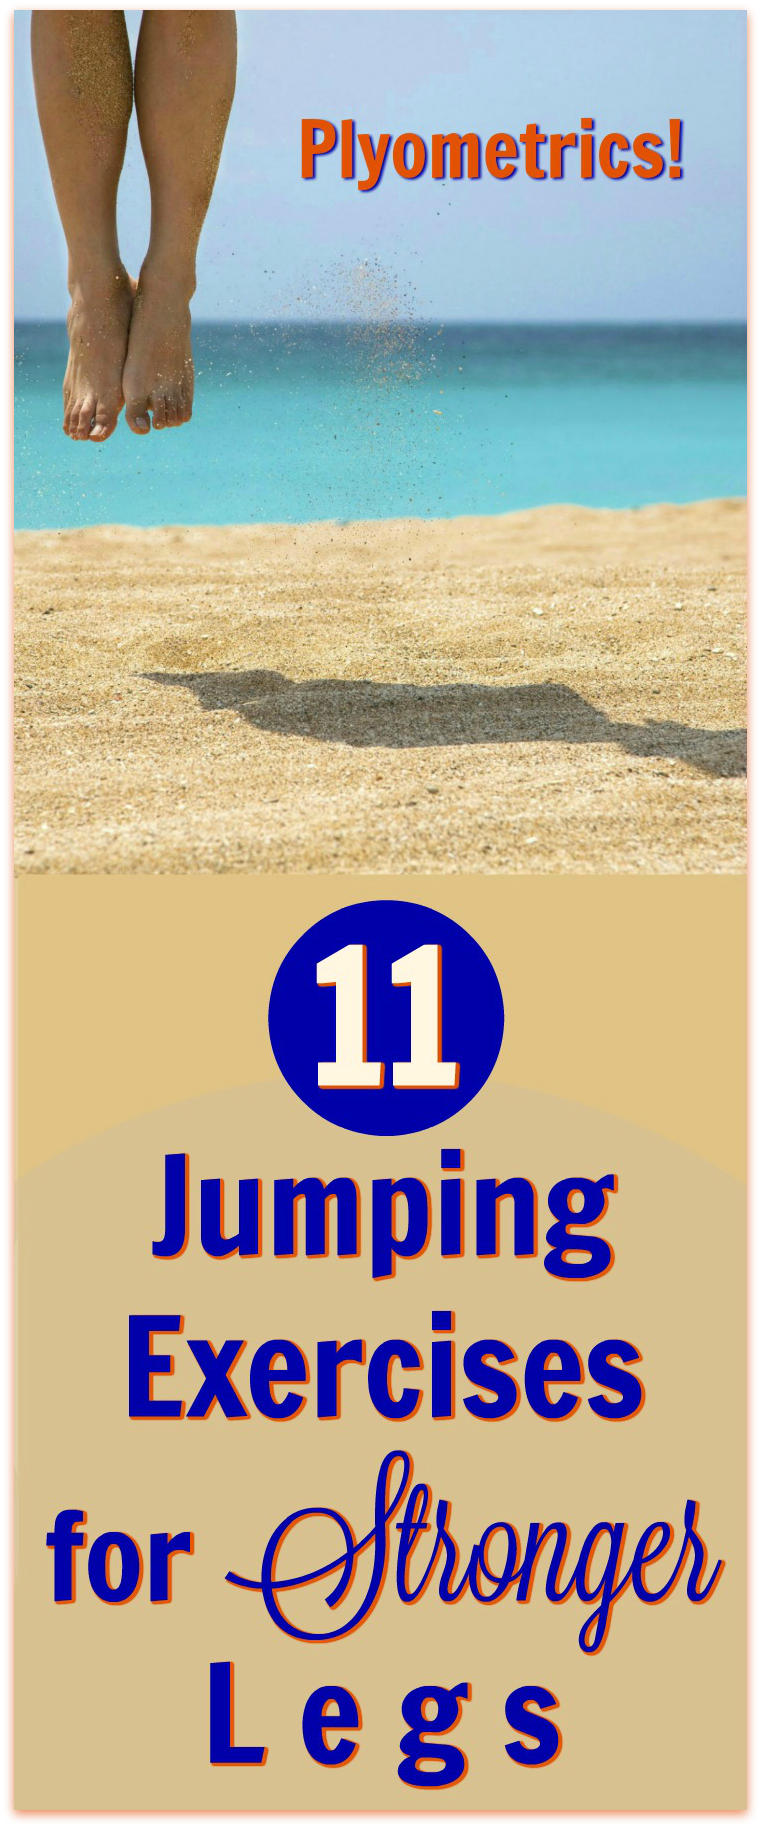 Plyometrics! 12 Jumping Exercises to Help Give You Great ...